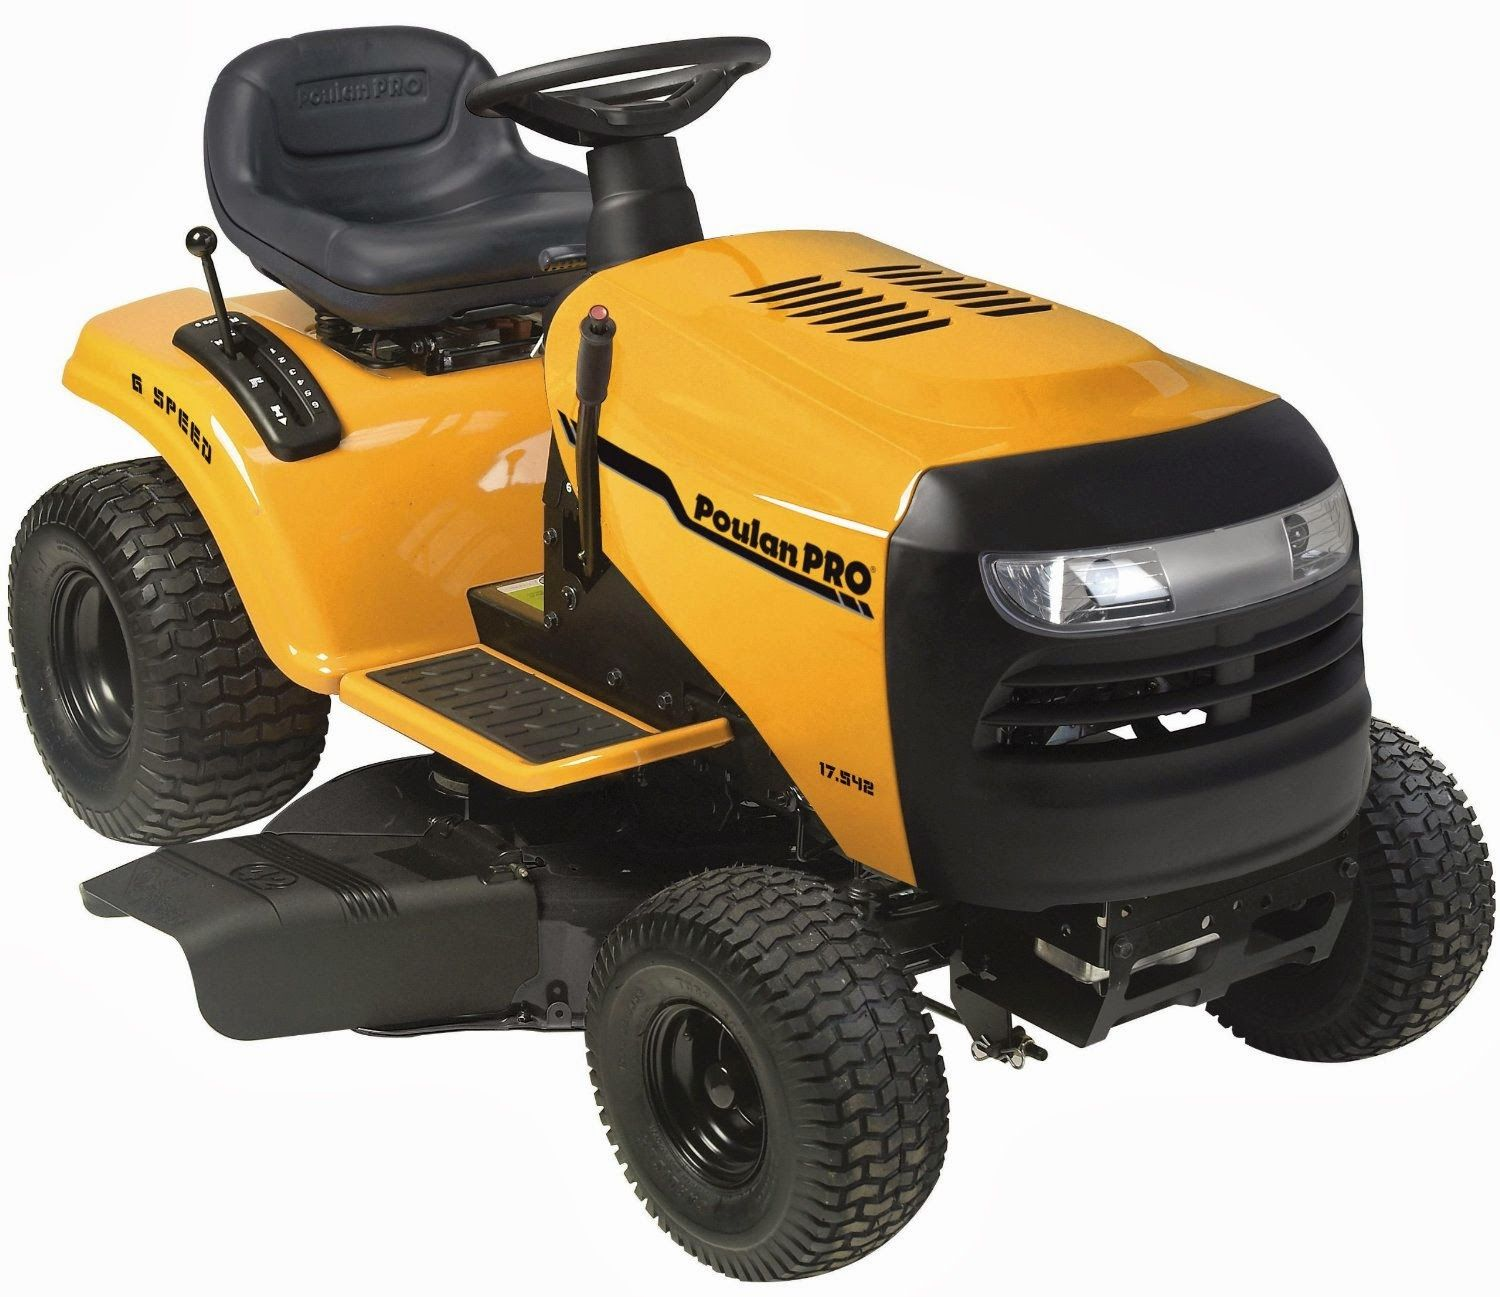 Poulan Pro Lawn Mower Reviews Tractor Pb17542lt 17 5 Hp 6 Sd